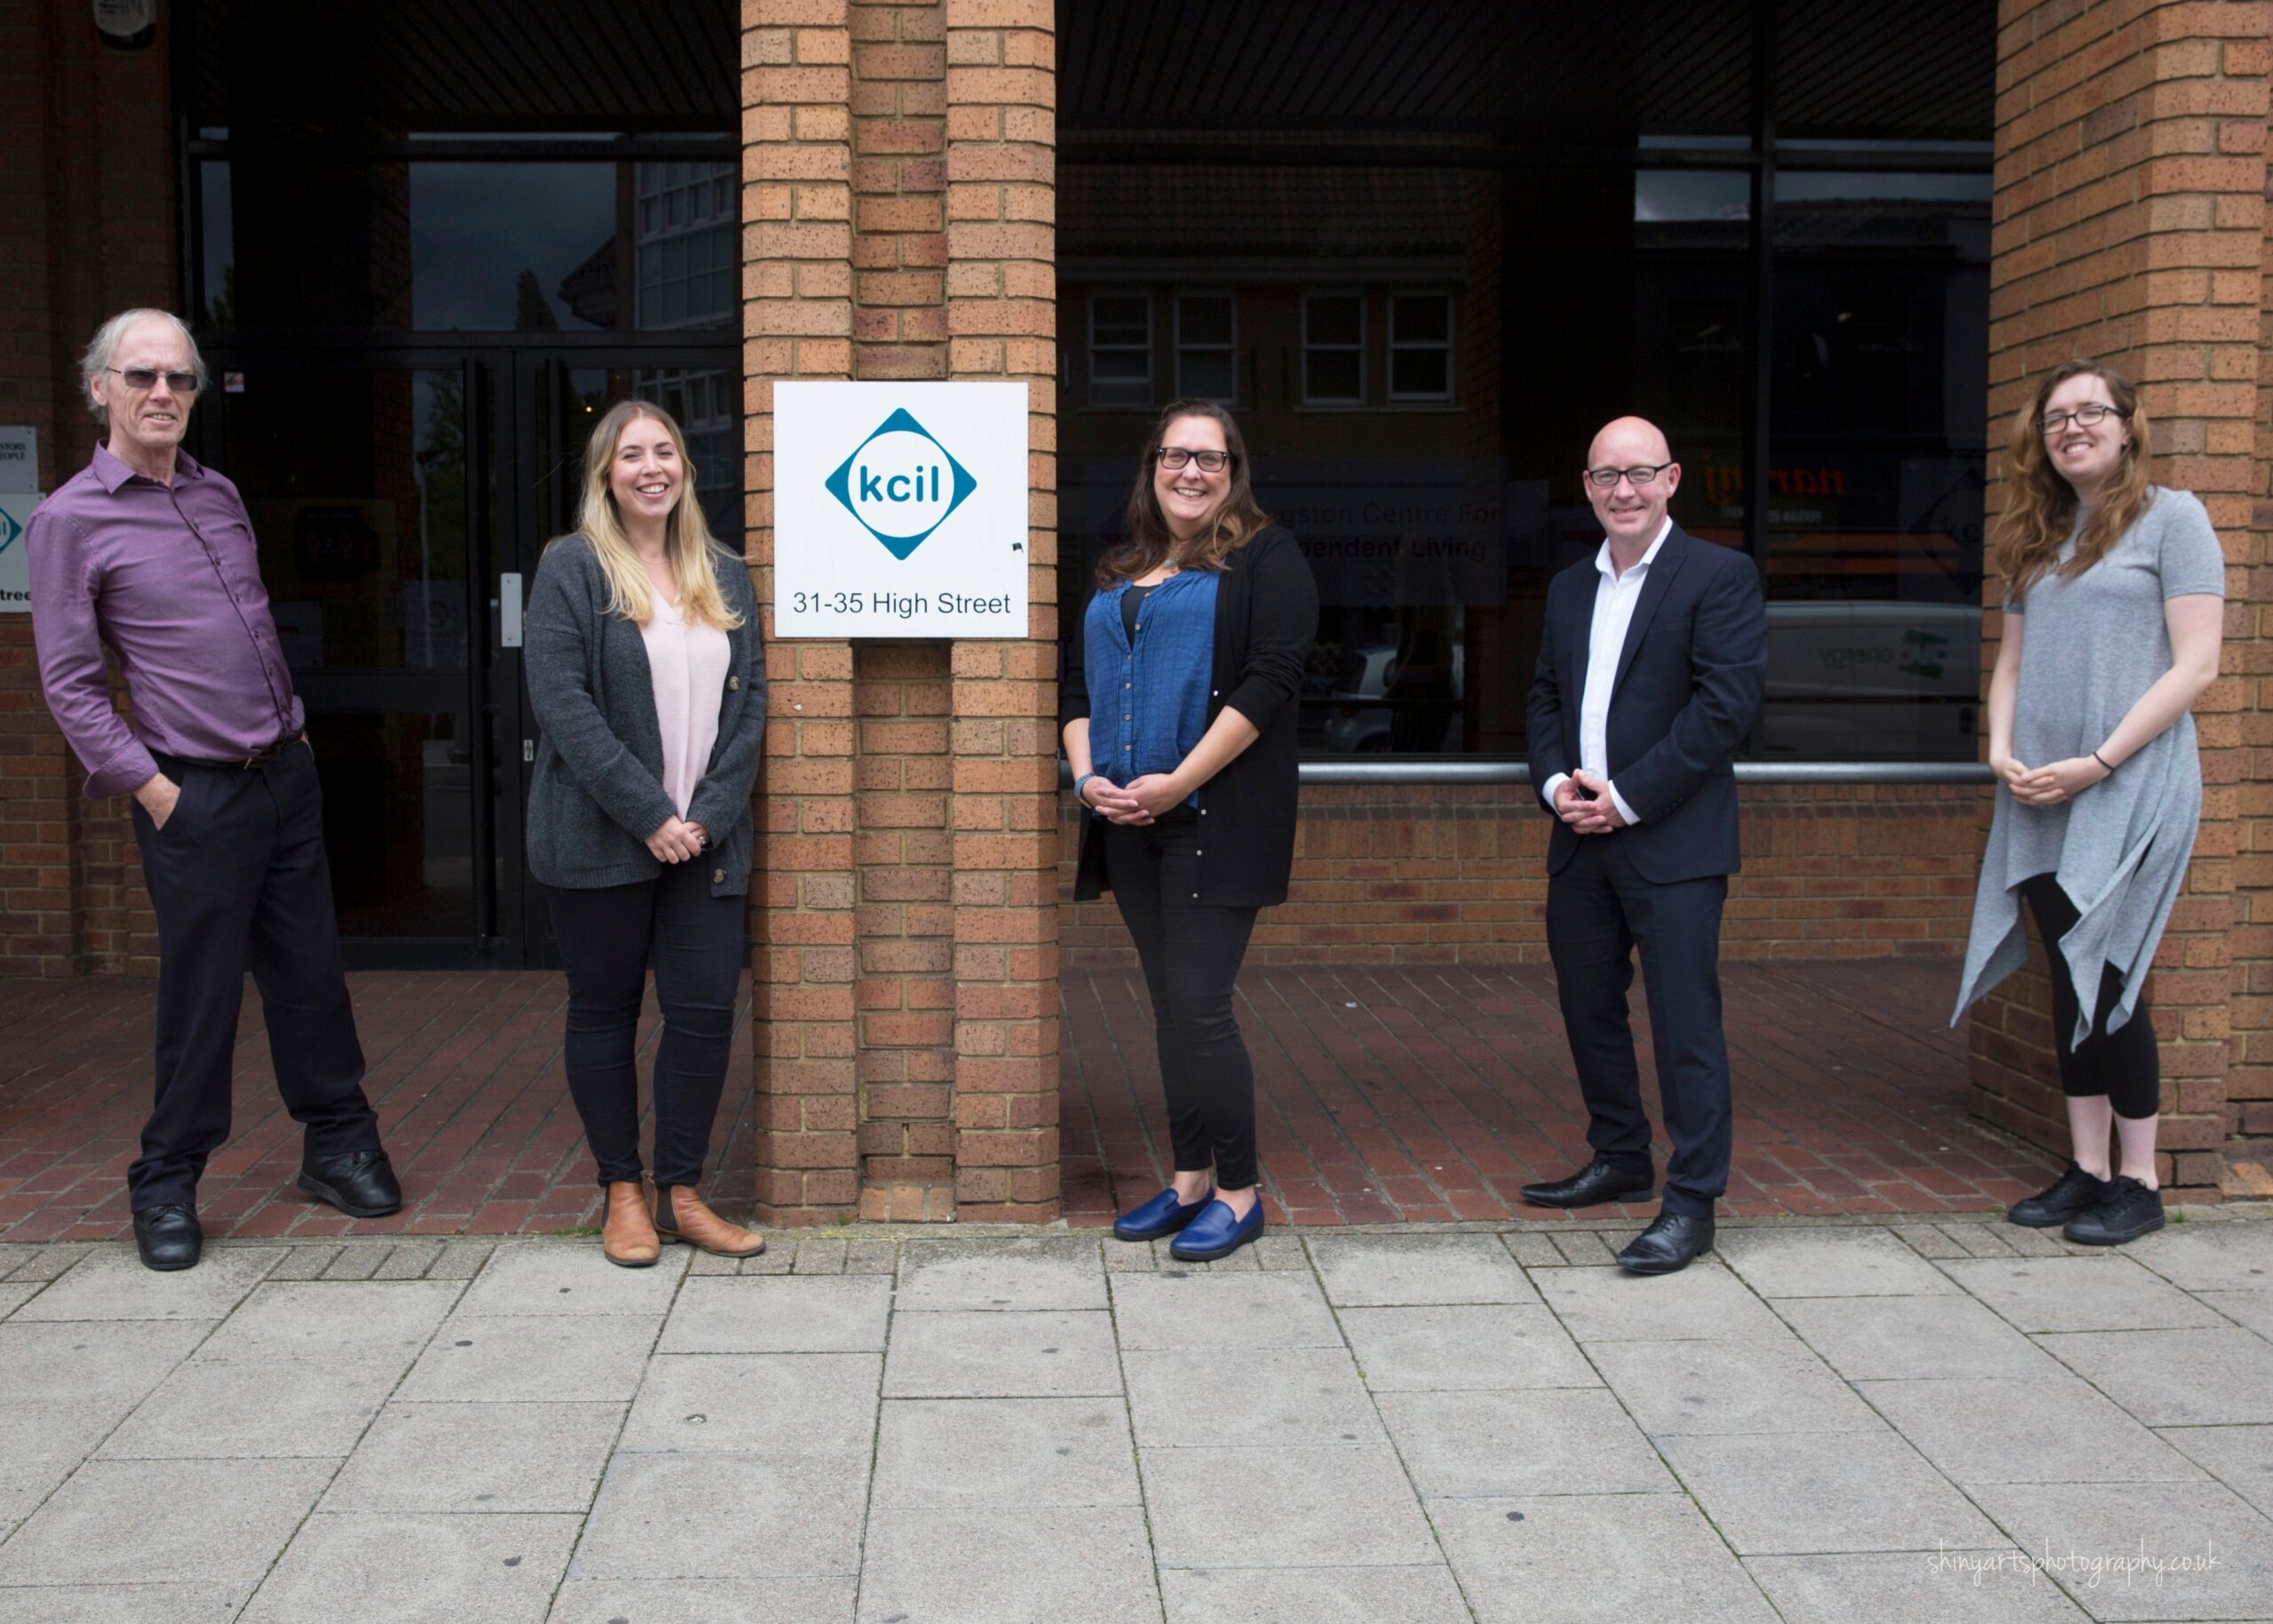 Some of the KCIL team standing outside the KCIL office